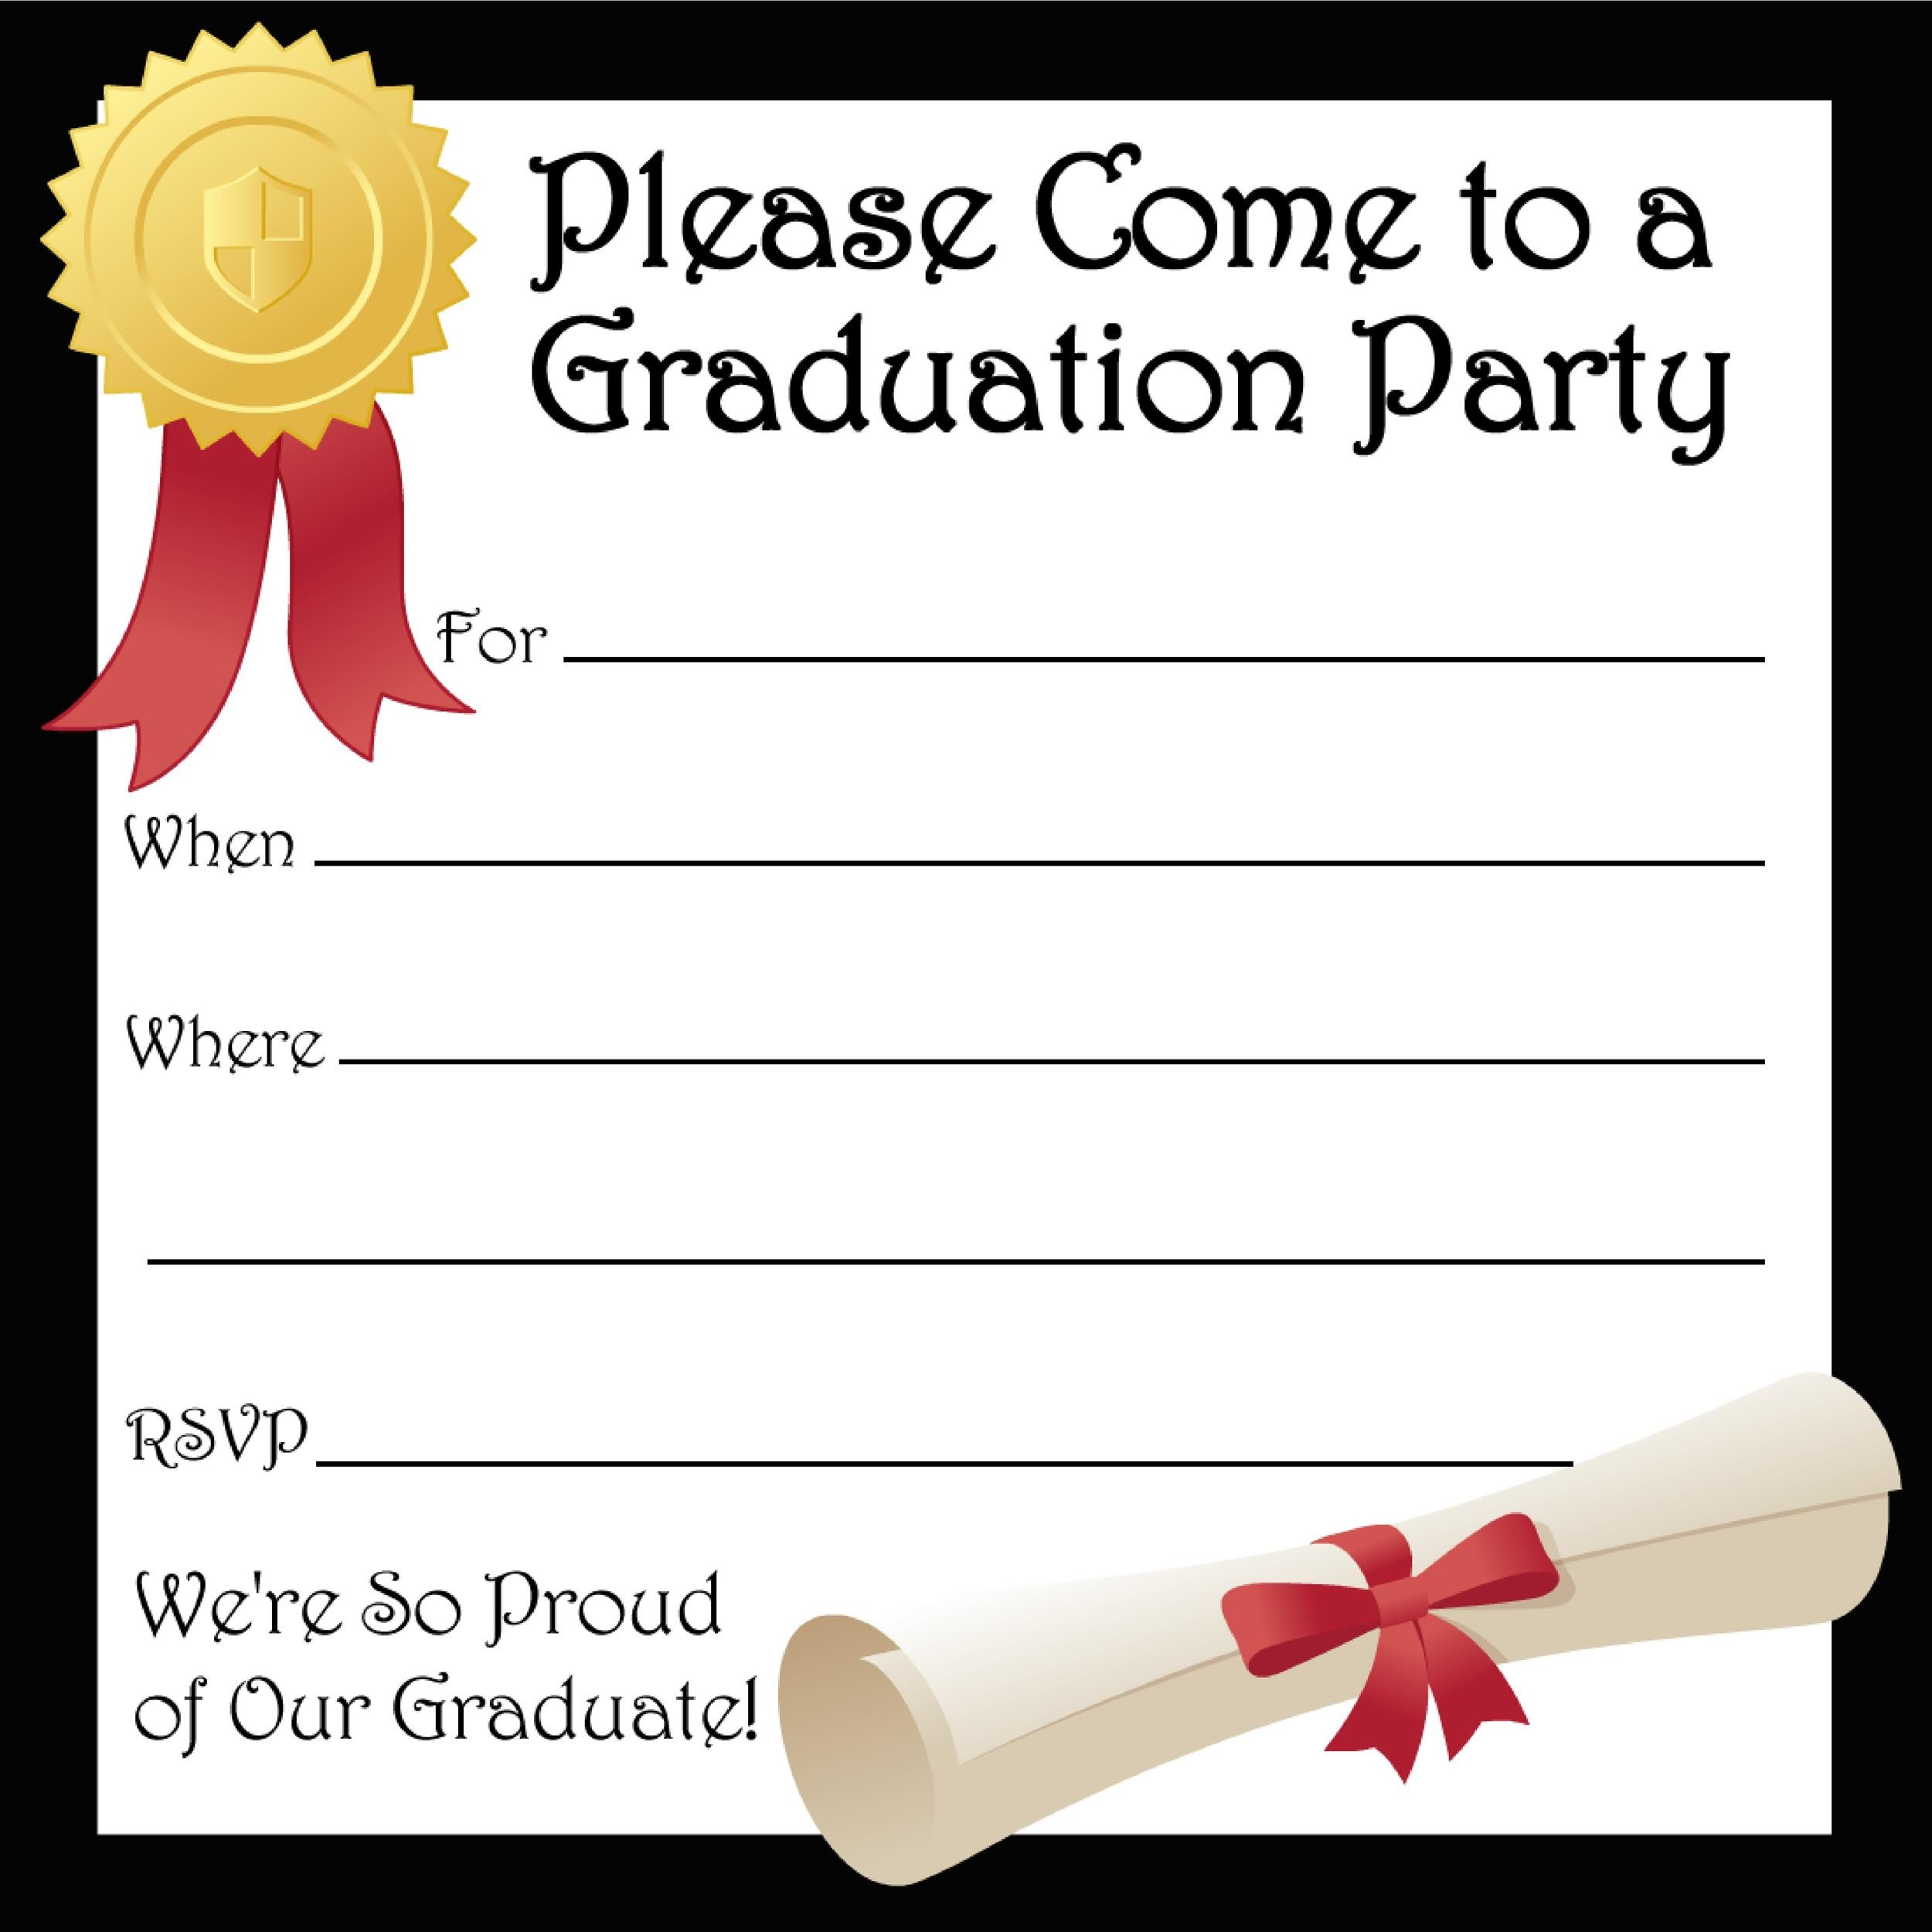 Create Invitation Template: 40+ FREE Graduation Invitation Templates ᐅ Template Lab